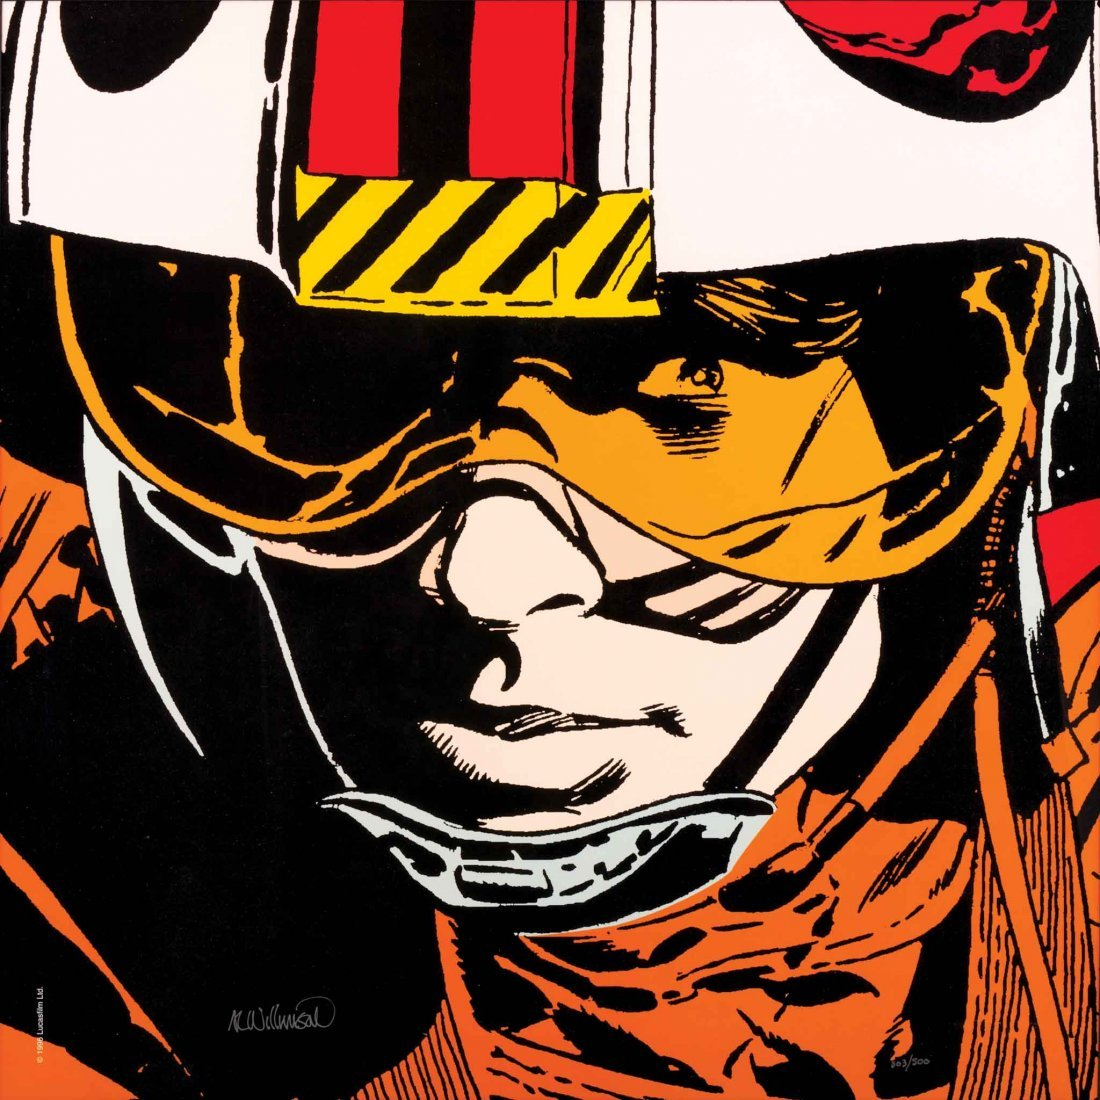 181: AL WILLIAMSON STAR WARS LUKE SKYWALKER LITHOGRAPH